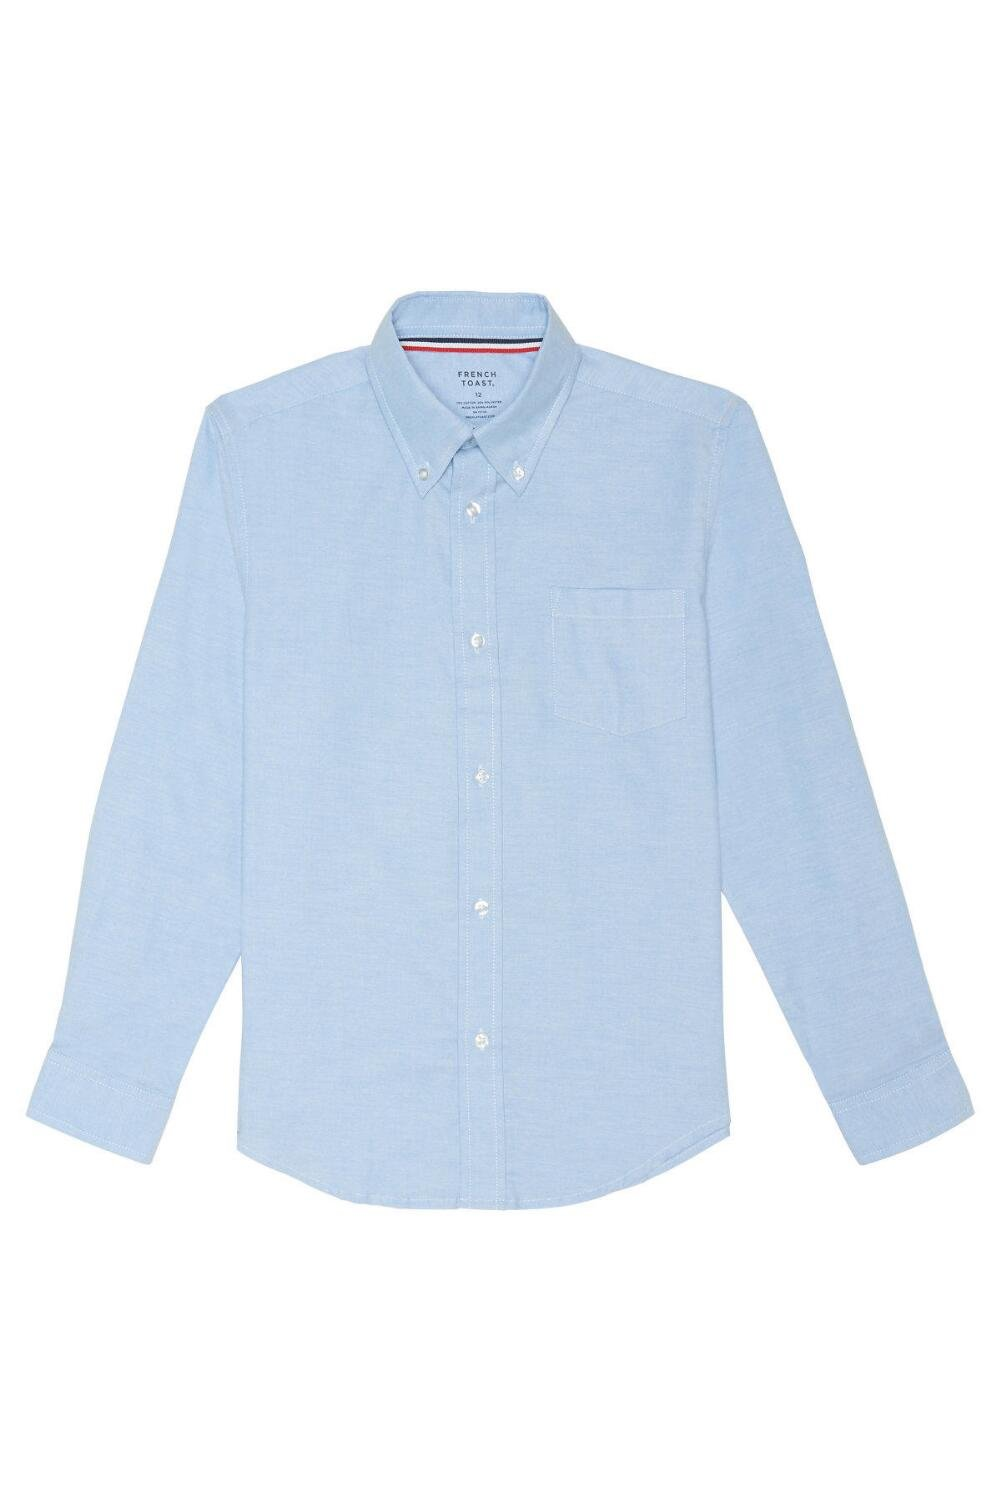 French Toast Big Boys' Long Sleeve Oxford Dress Shirt, Light Blue, 12